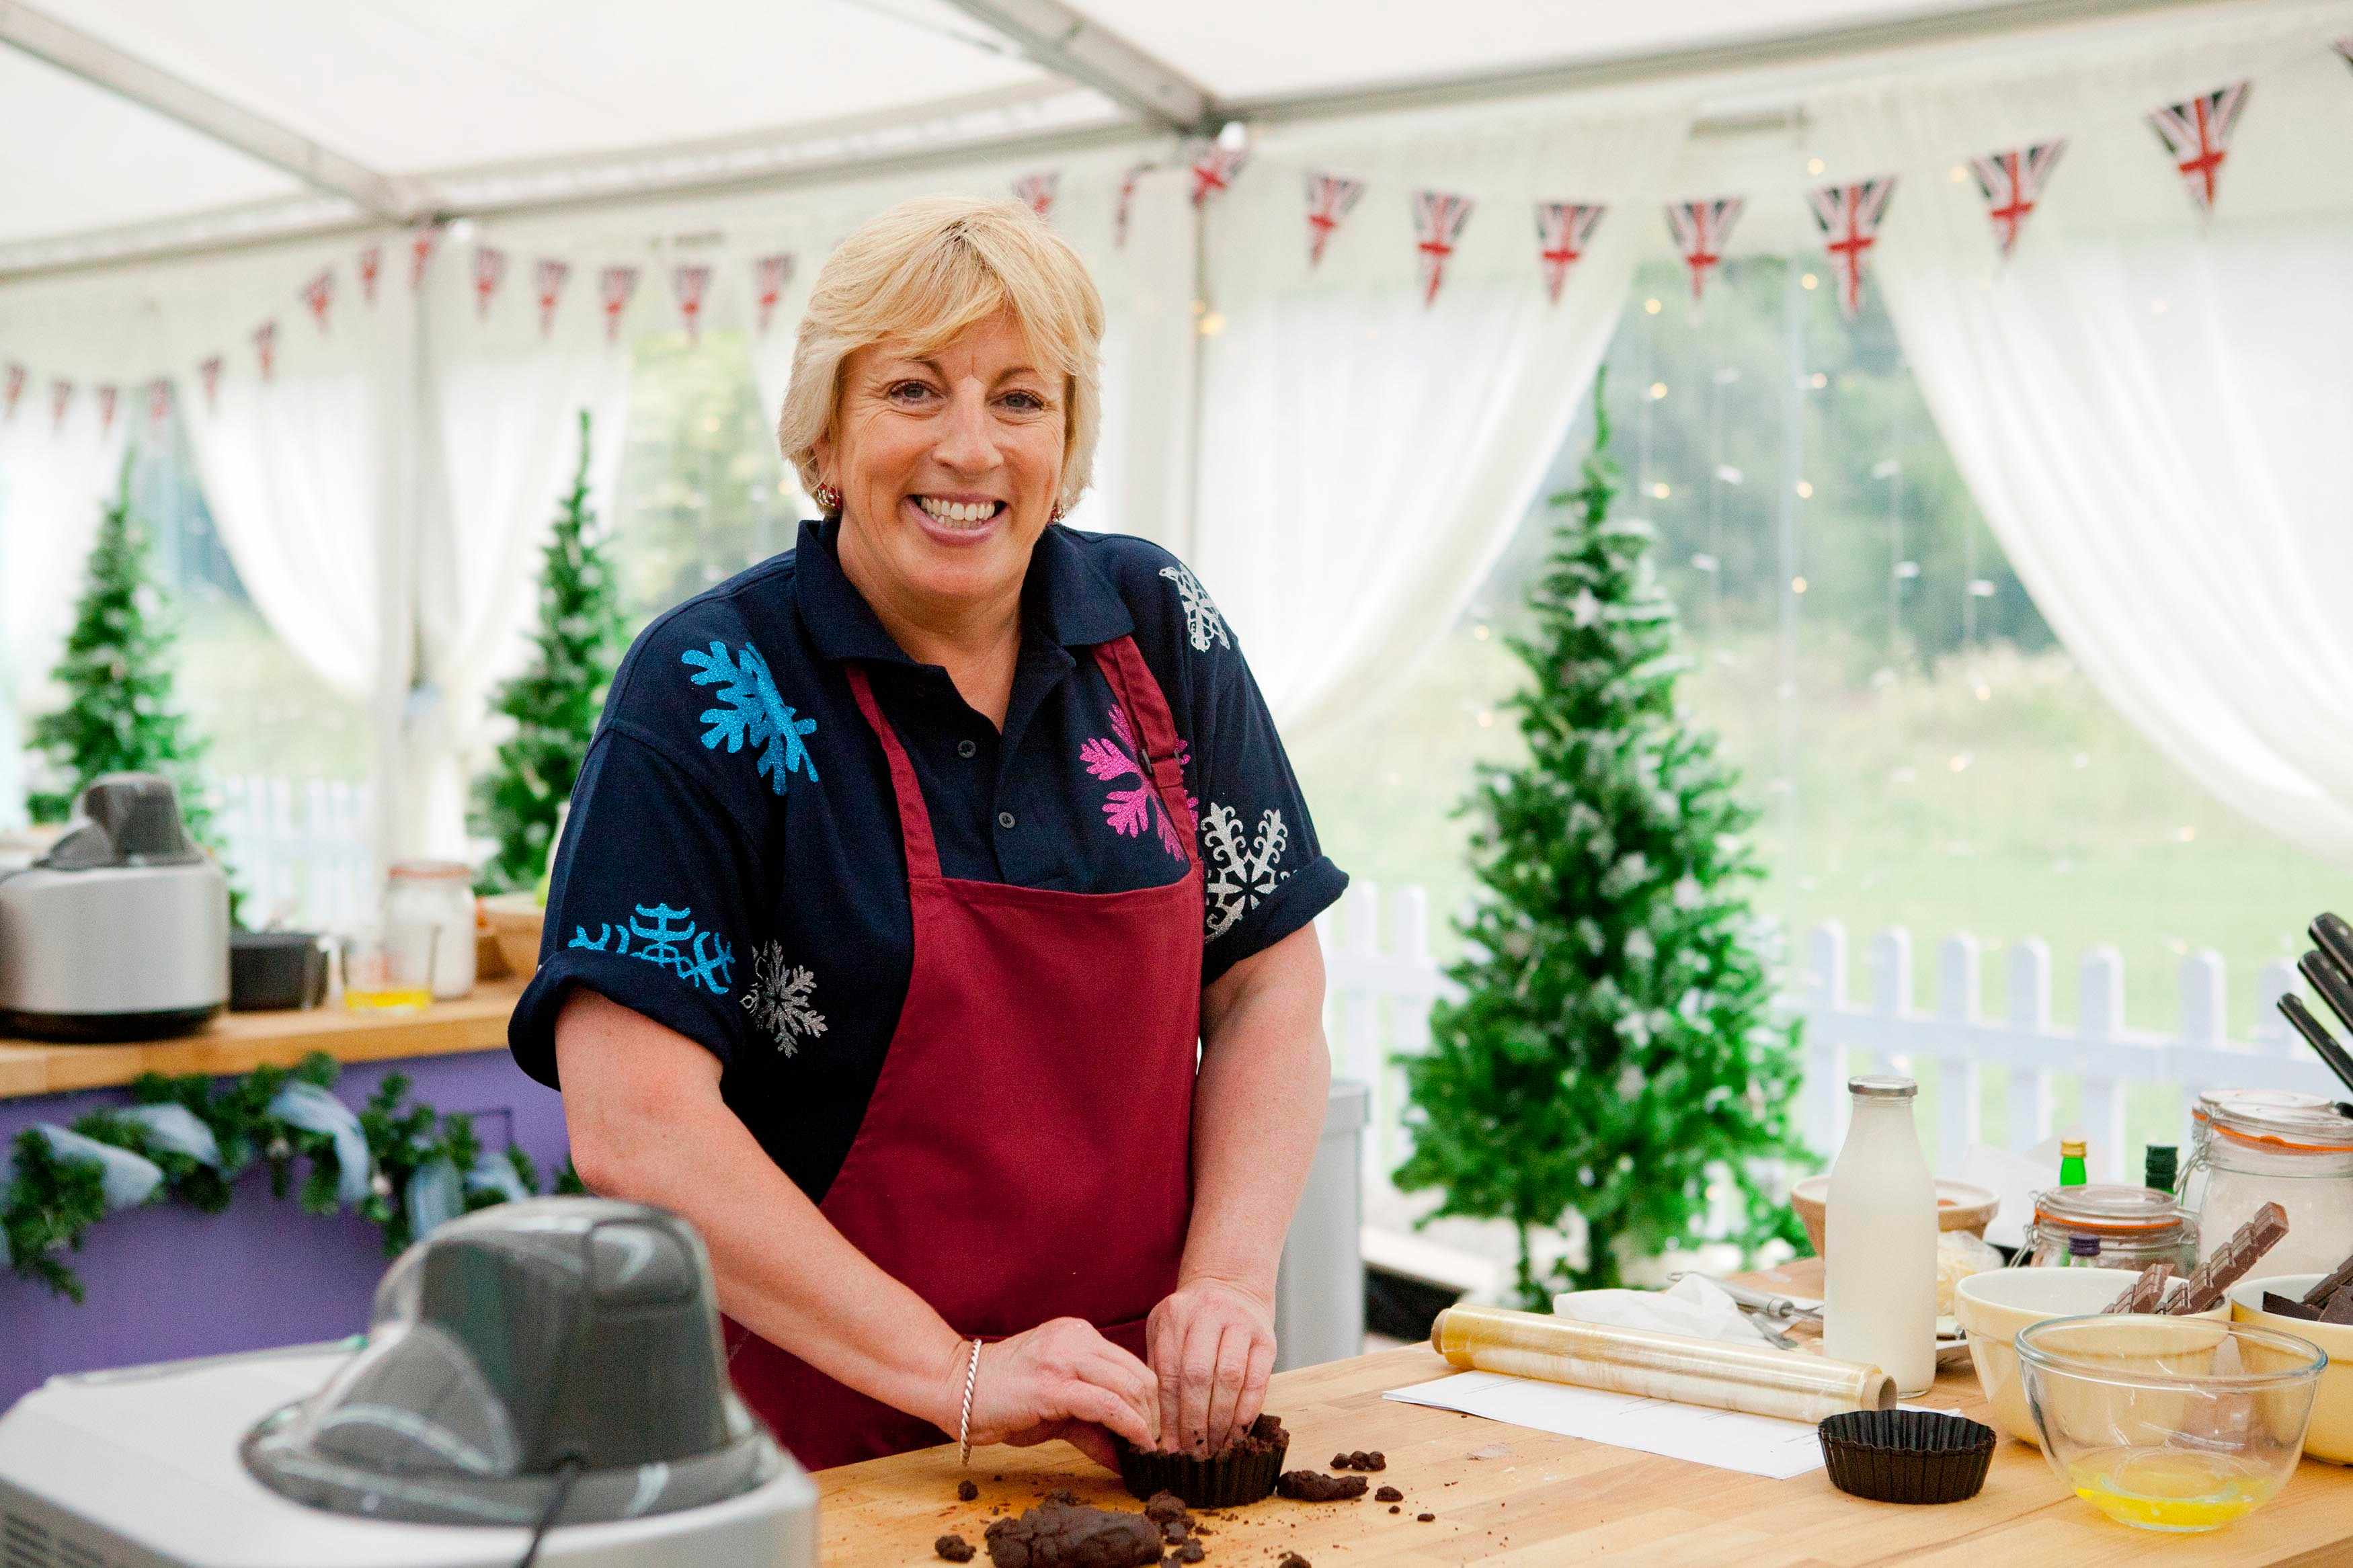 The Great Festive Bake Off: Sandy Docherty (C4, TL)